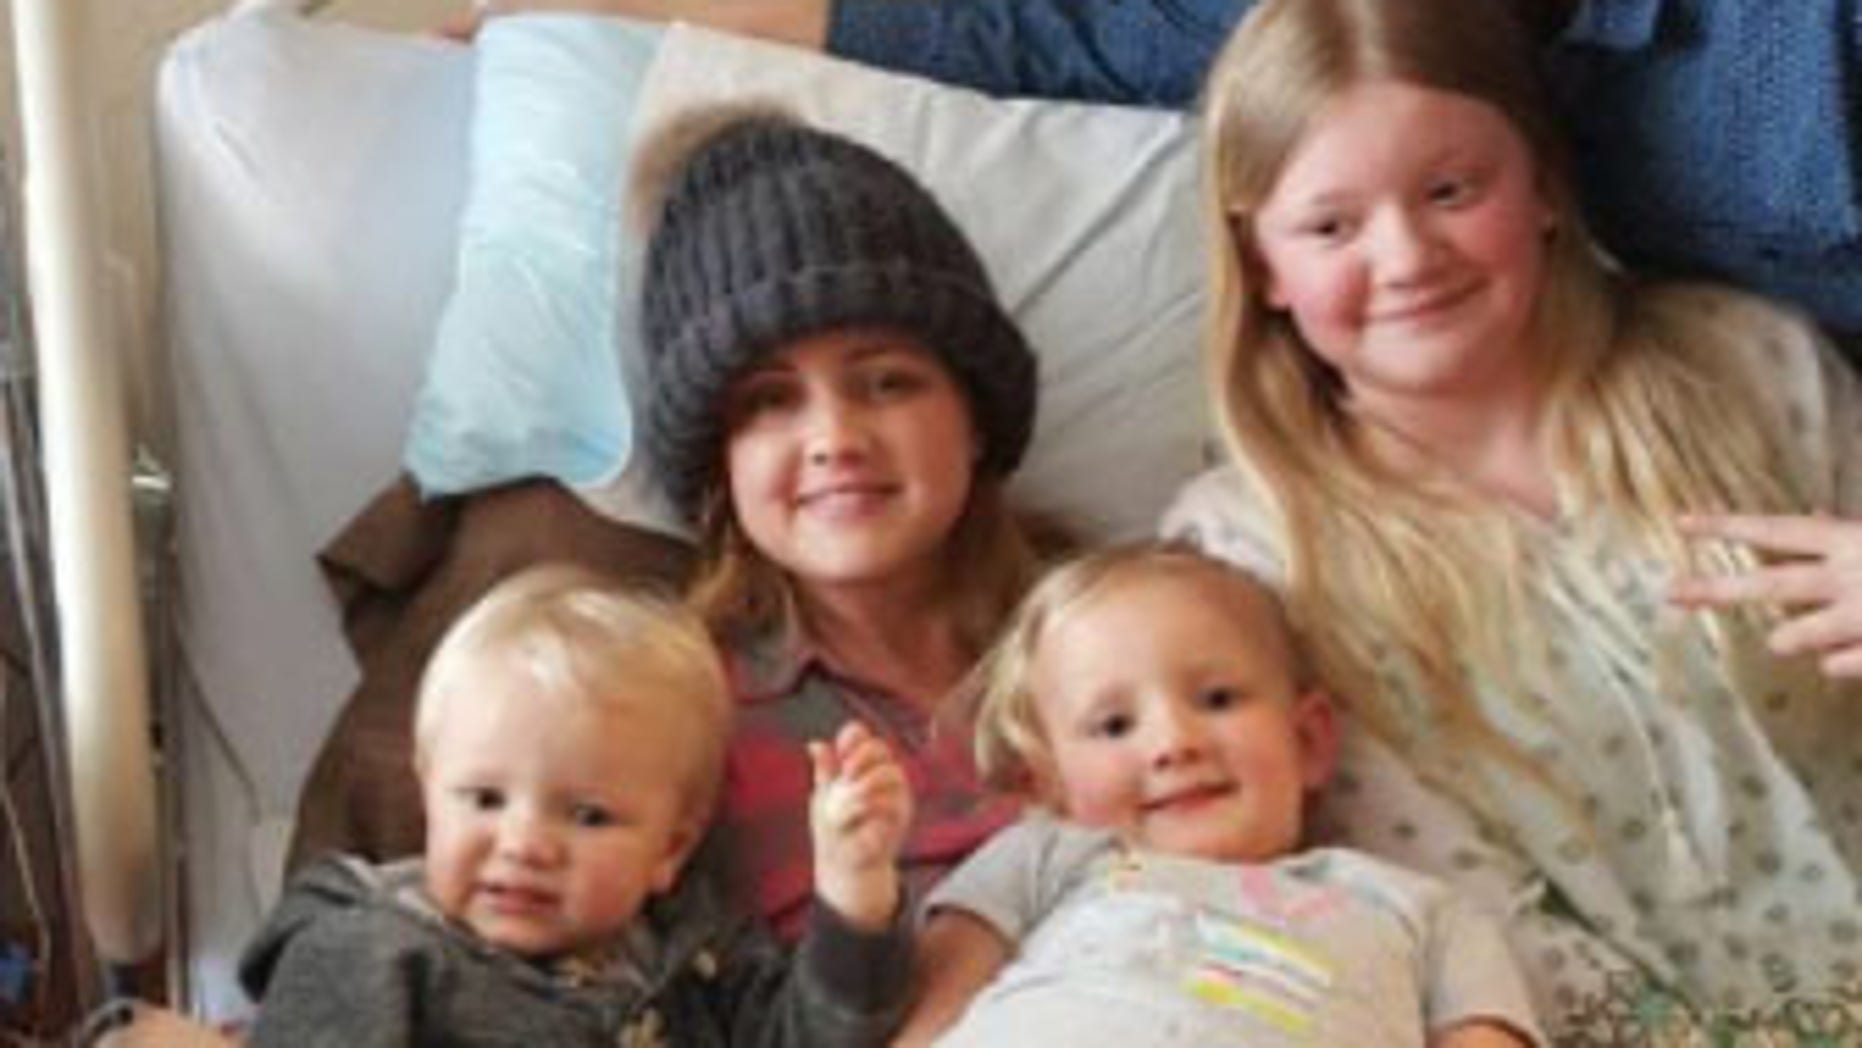 Carrie Deklyn found out she was pregnant with her sixth child just two weeks after being diagnosed with glioblastoma.